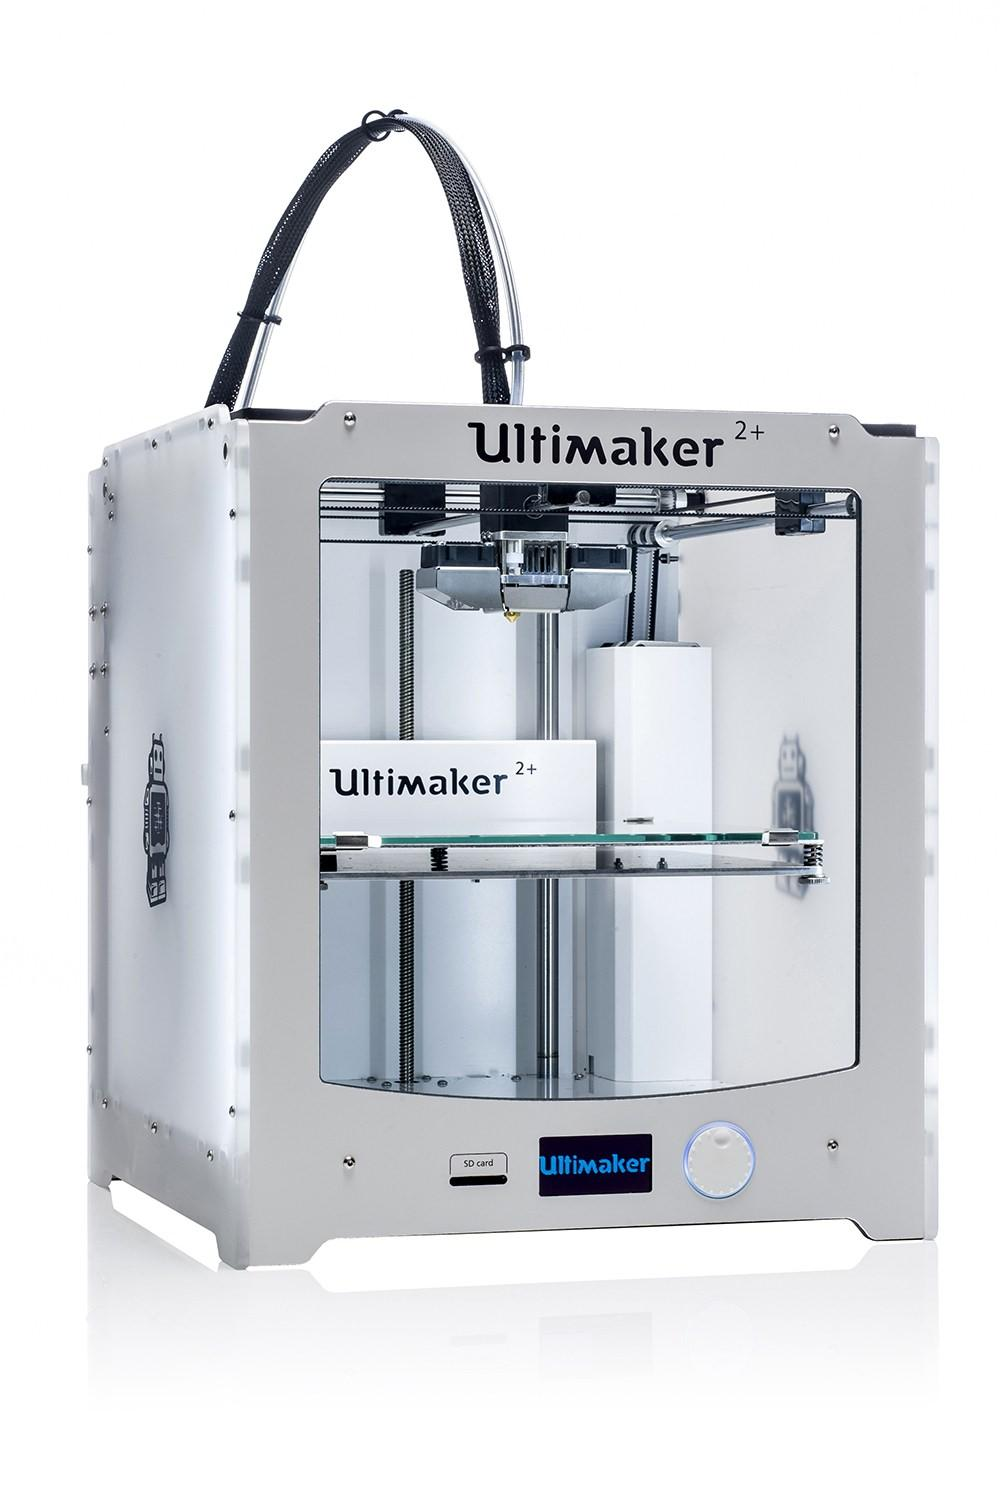 imprimante-3D-Ultimaker-2-plus-a3dm-magazine